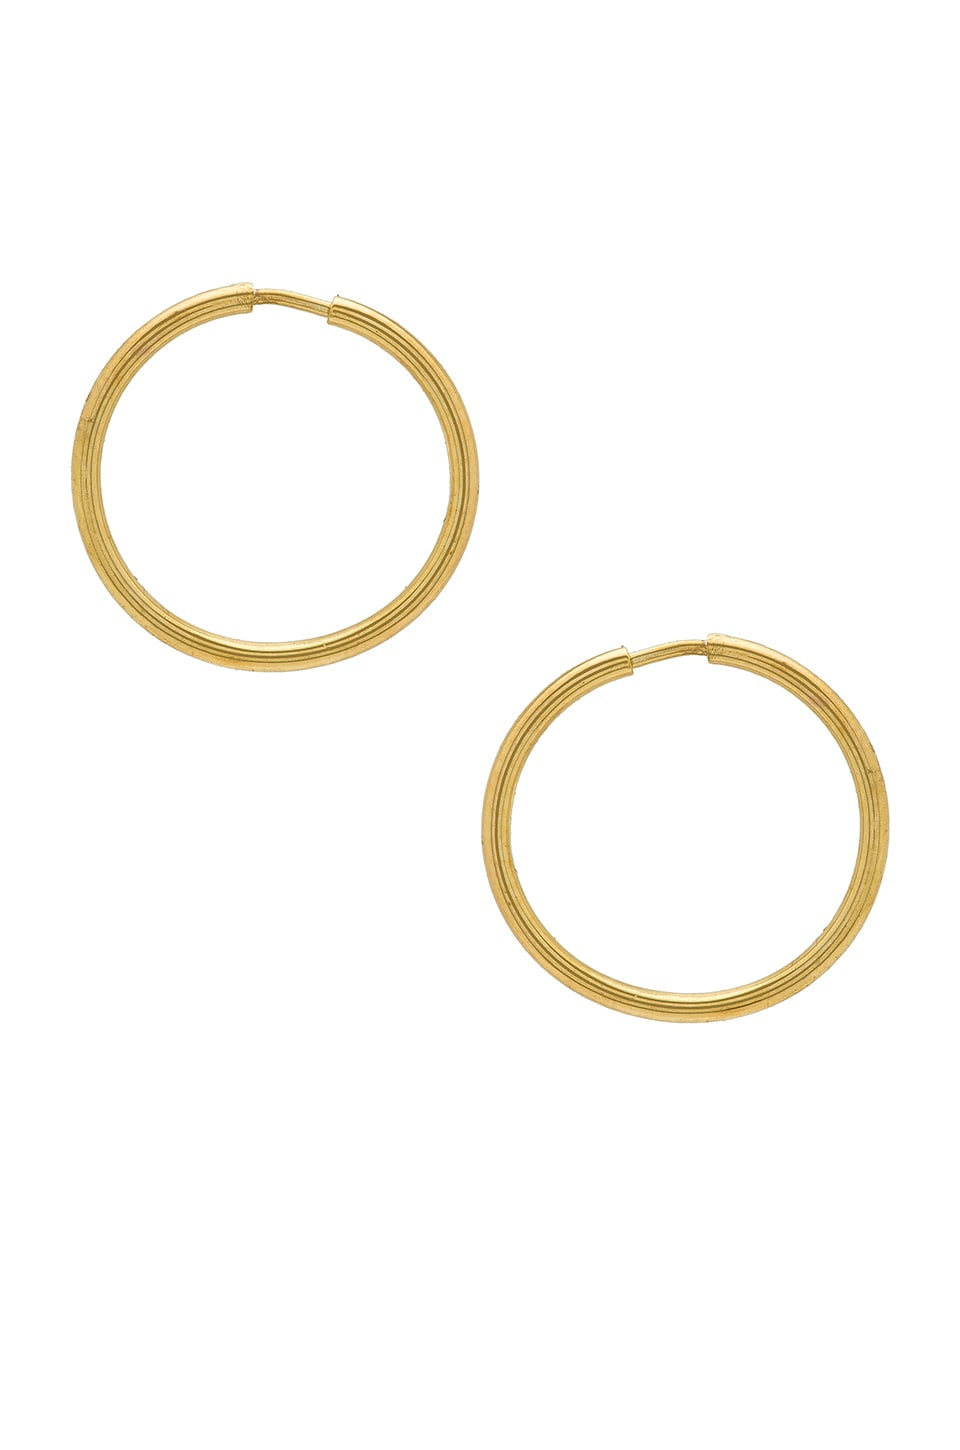 APRES JEWELRY Baby Wire Hoops in Metallic Gold